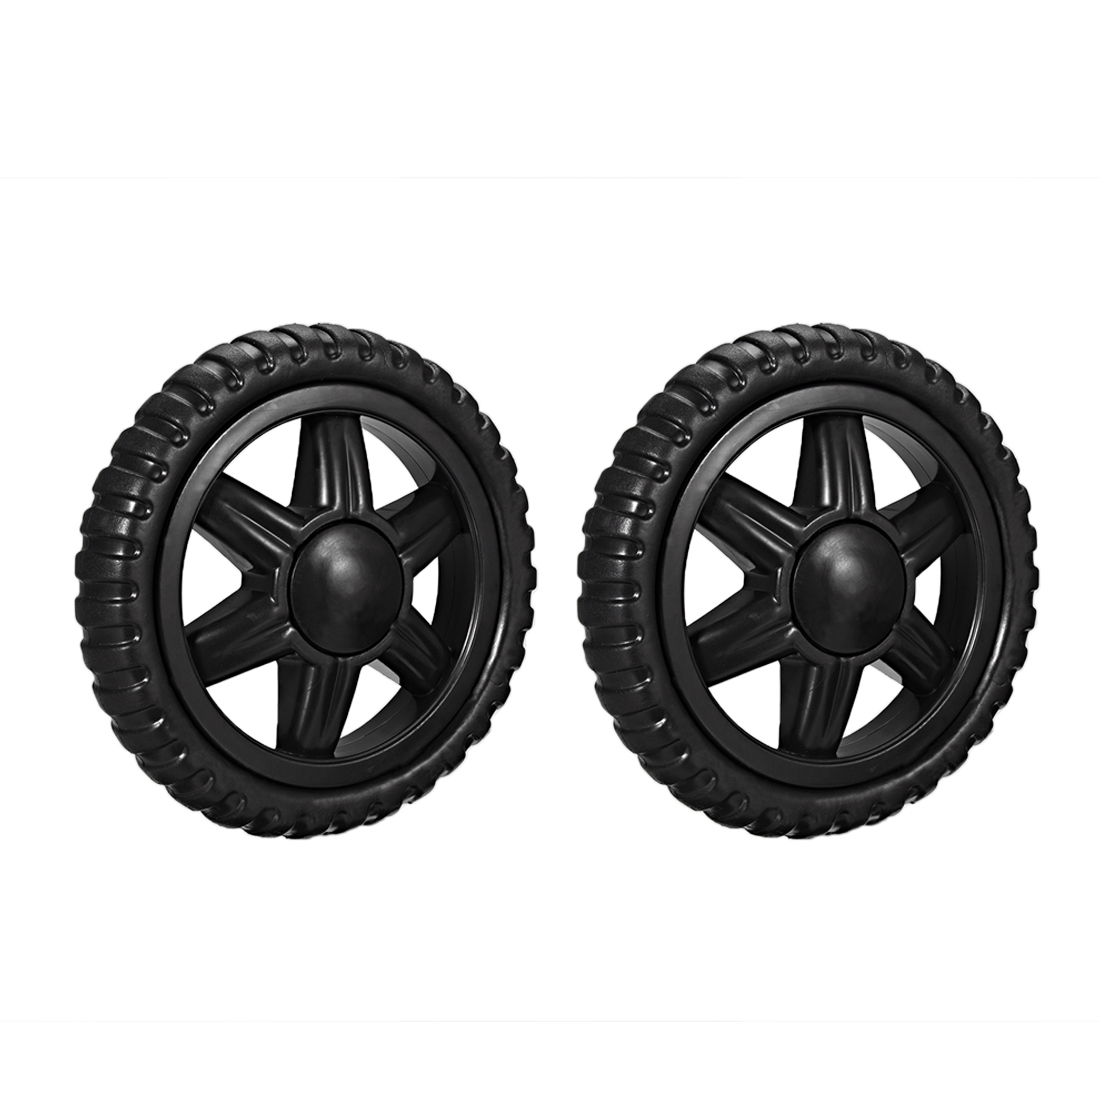 uxcell New Hot 2Pcs Shopping Cart Wheels 5 Inch Dia Travelling Trolley Caster Replacement Rubber Foaming Black(China)